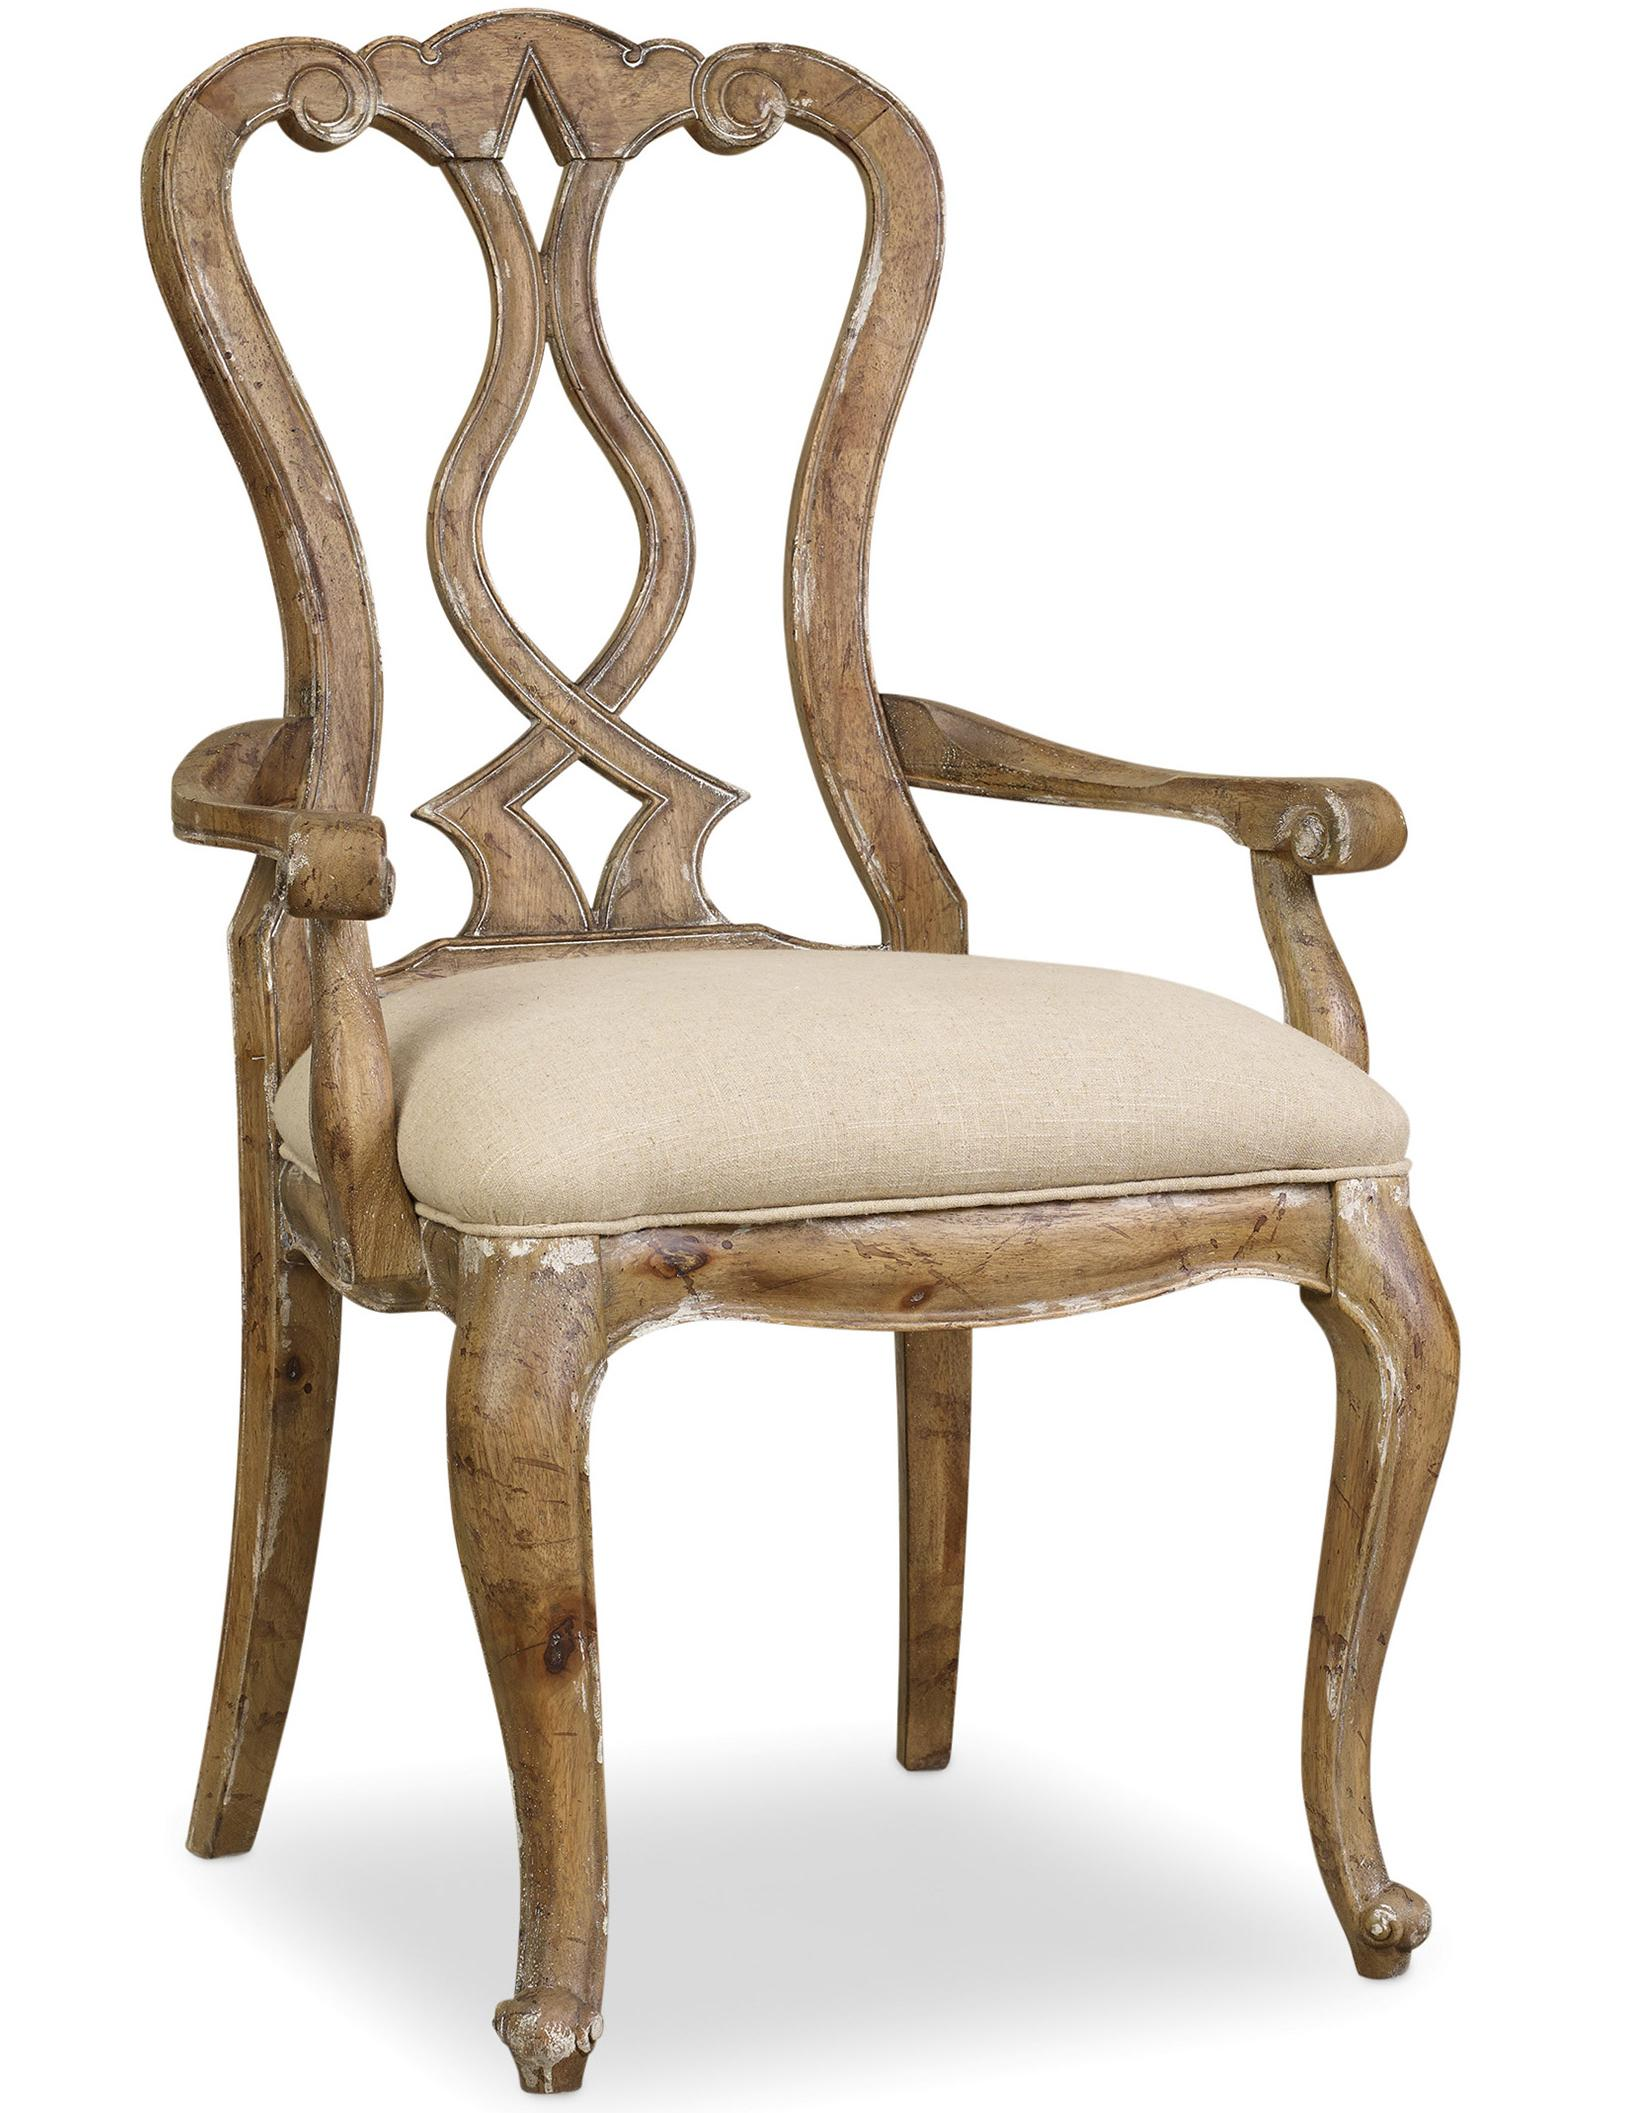 Hamilton Home Chatelet Splatback Arm Chair - Item Number: 5300-75400